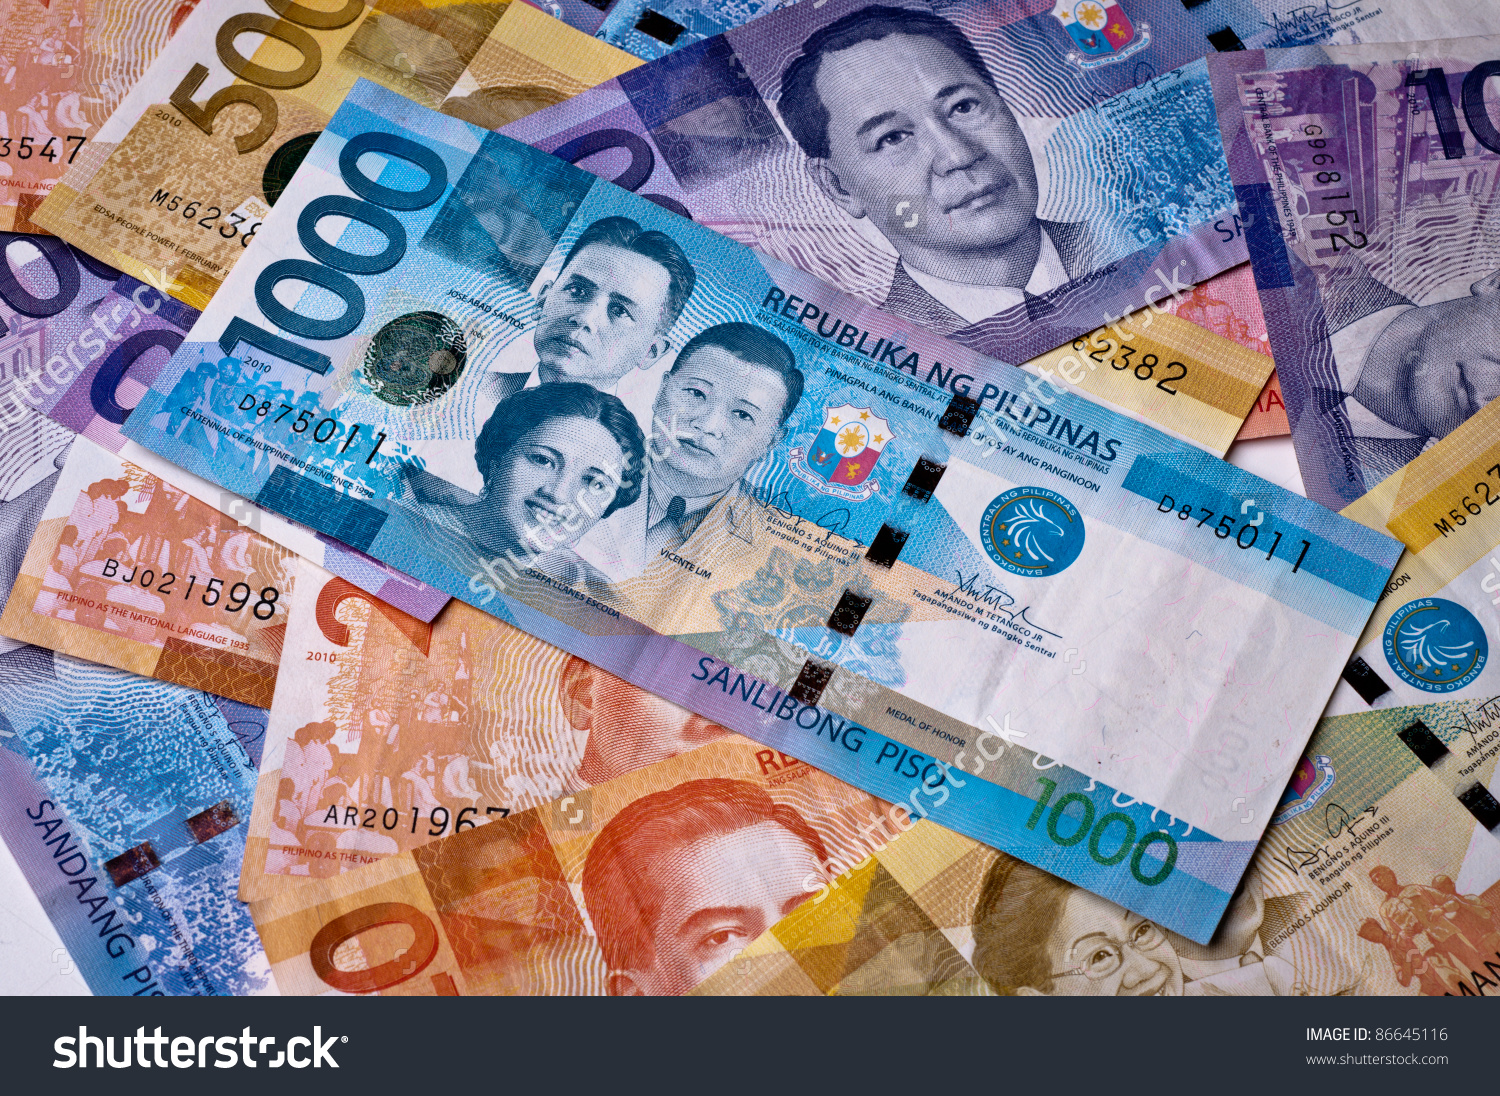 Philippine Currency 2010 Issue Various Denominations Stock Photo.